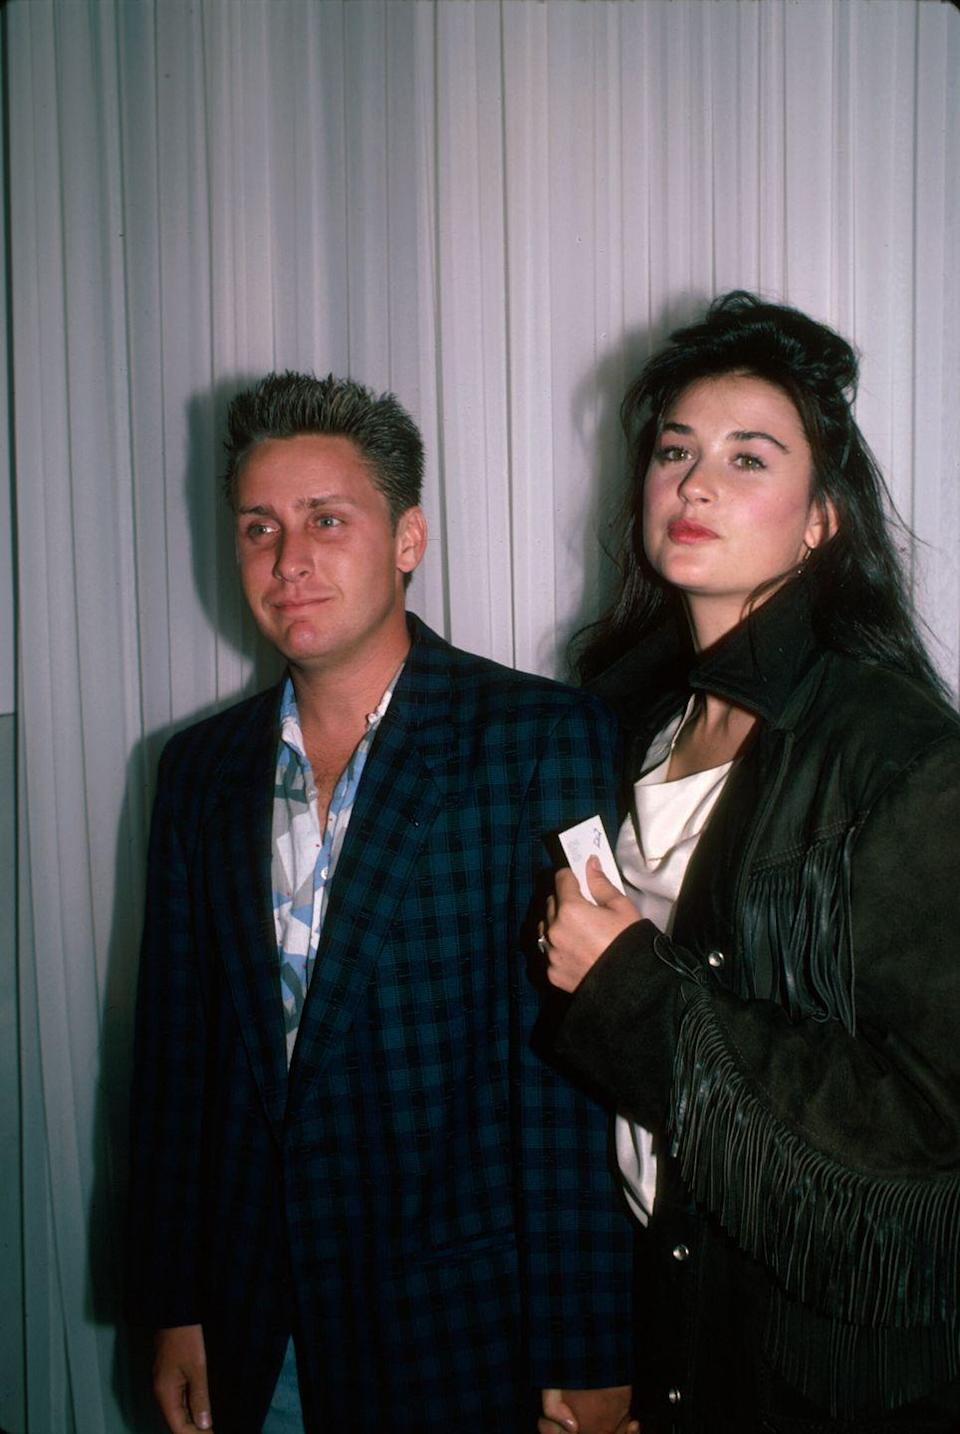 """<p>Demi and <em>The Breakfast Club </em><span class=""""redactor-invisible-space"""">actor met on the set of <em>Wisdom </em><span class=""""redactor-invisible-space"""">in 1984, getting engaged a year later before <a href=""""http://www.huffingtonpost.com/2011/11/17/demi-moores-past-relation_n_1100328.html?slideshow=true#gallery/197721/1"""" rel=""""nofollow noopener"""" target=""""_blank"""" data-ylk=""""slk:parting ways"""" class=""""link rapid-noclick-resp"""">parting ways</a> in 1987.</span></span></p>"""